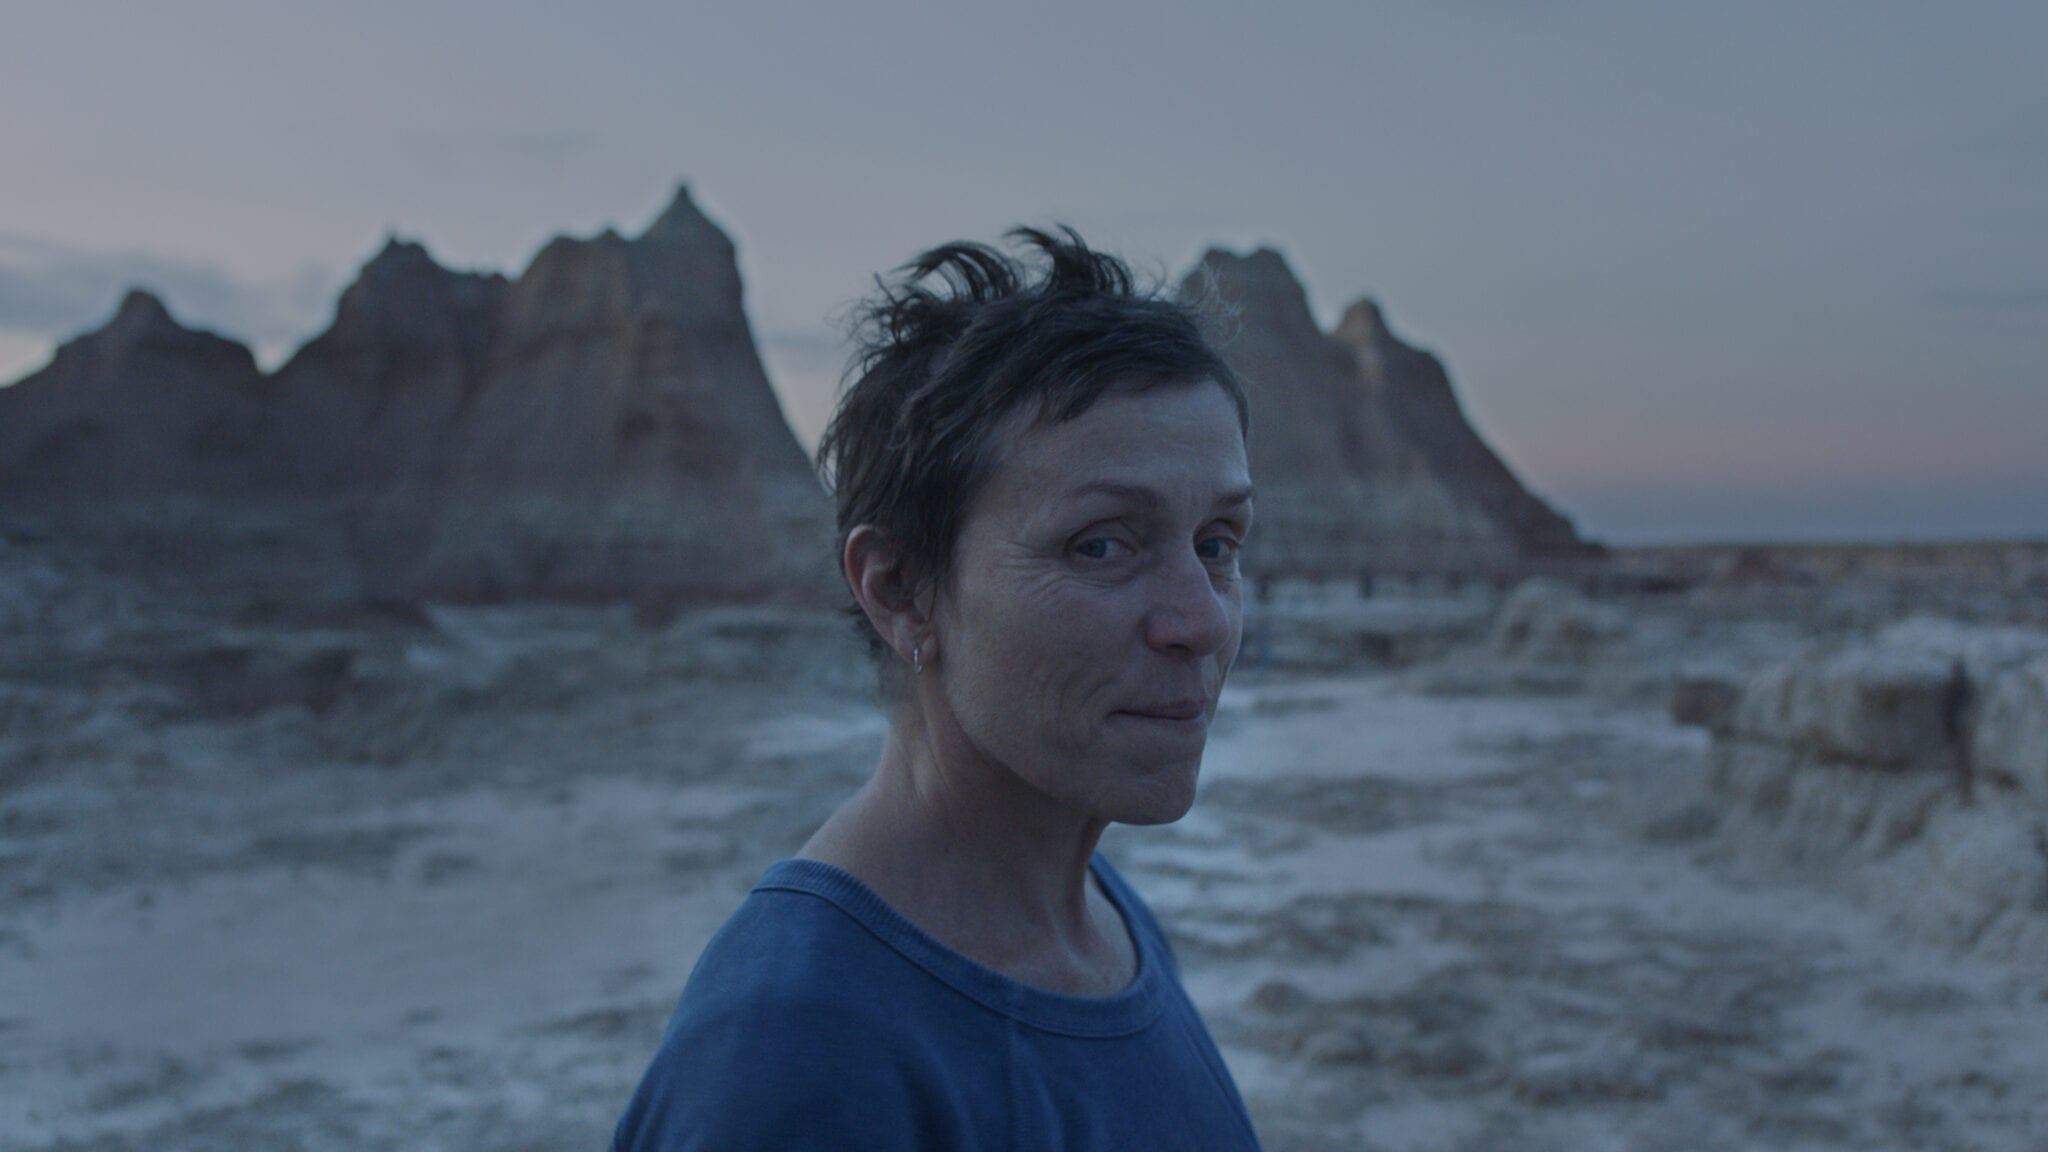 Mcdormand wearing a blue t-shirt looking towards the camera while standing in front of a mountainous background.